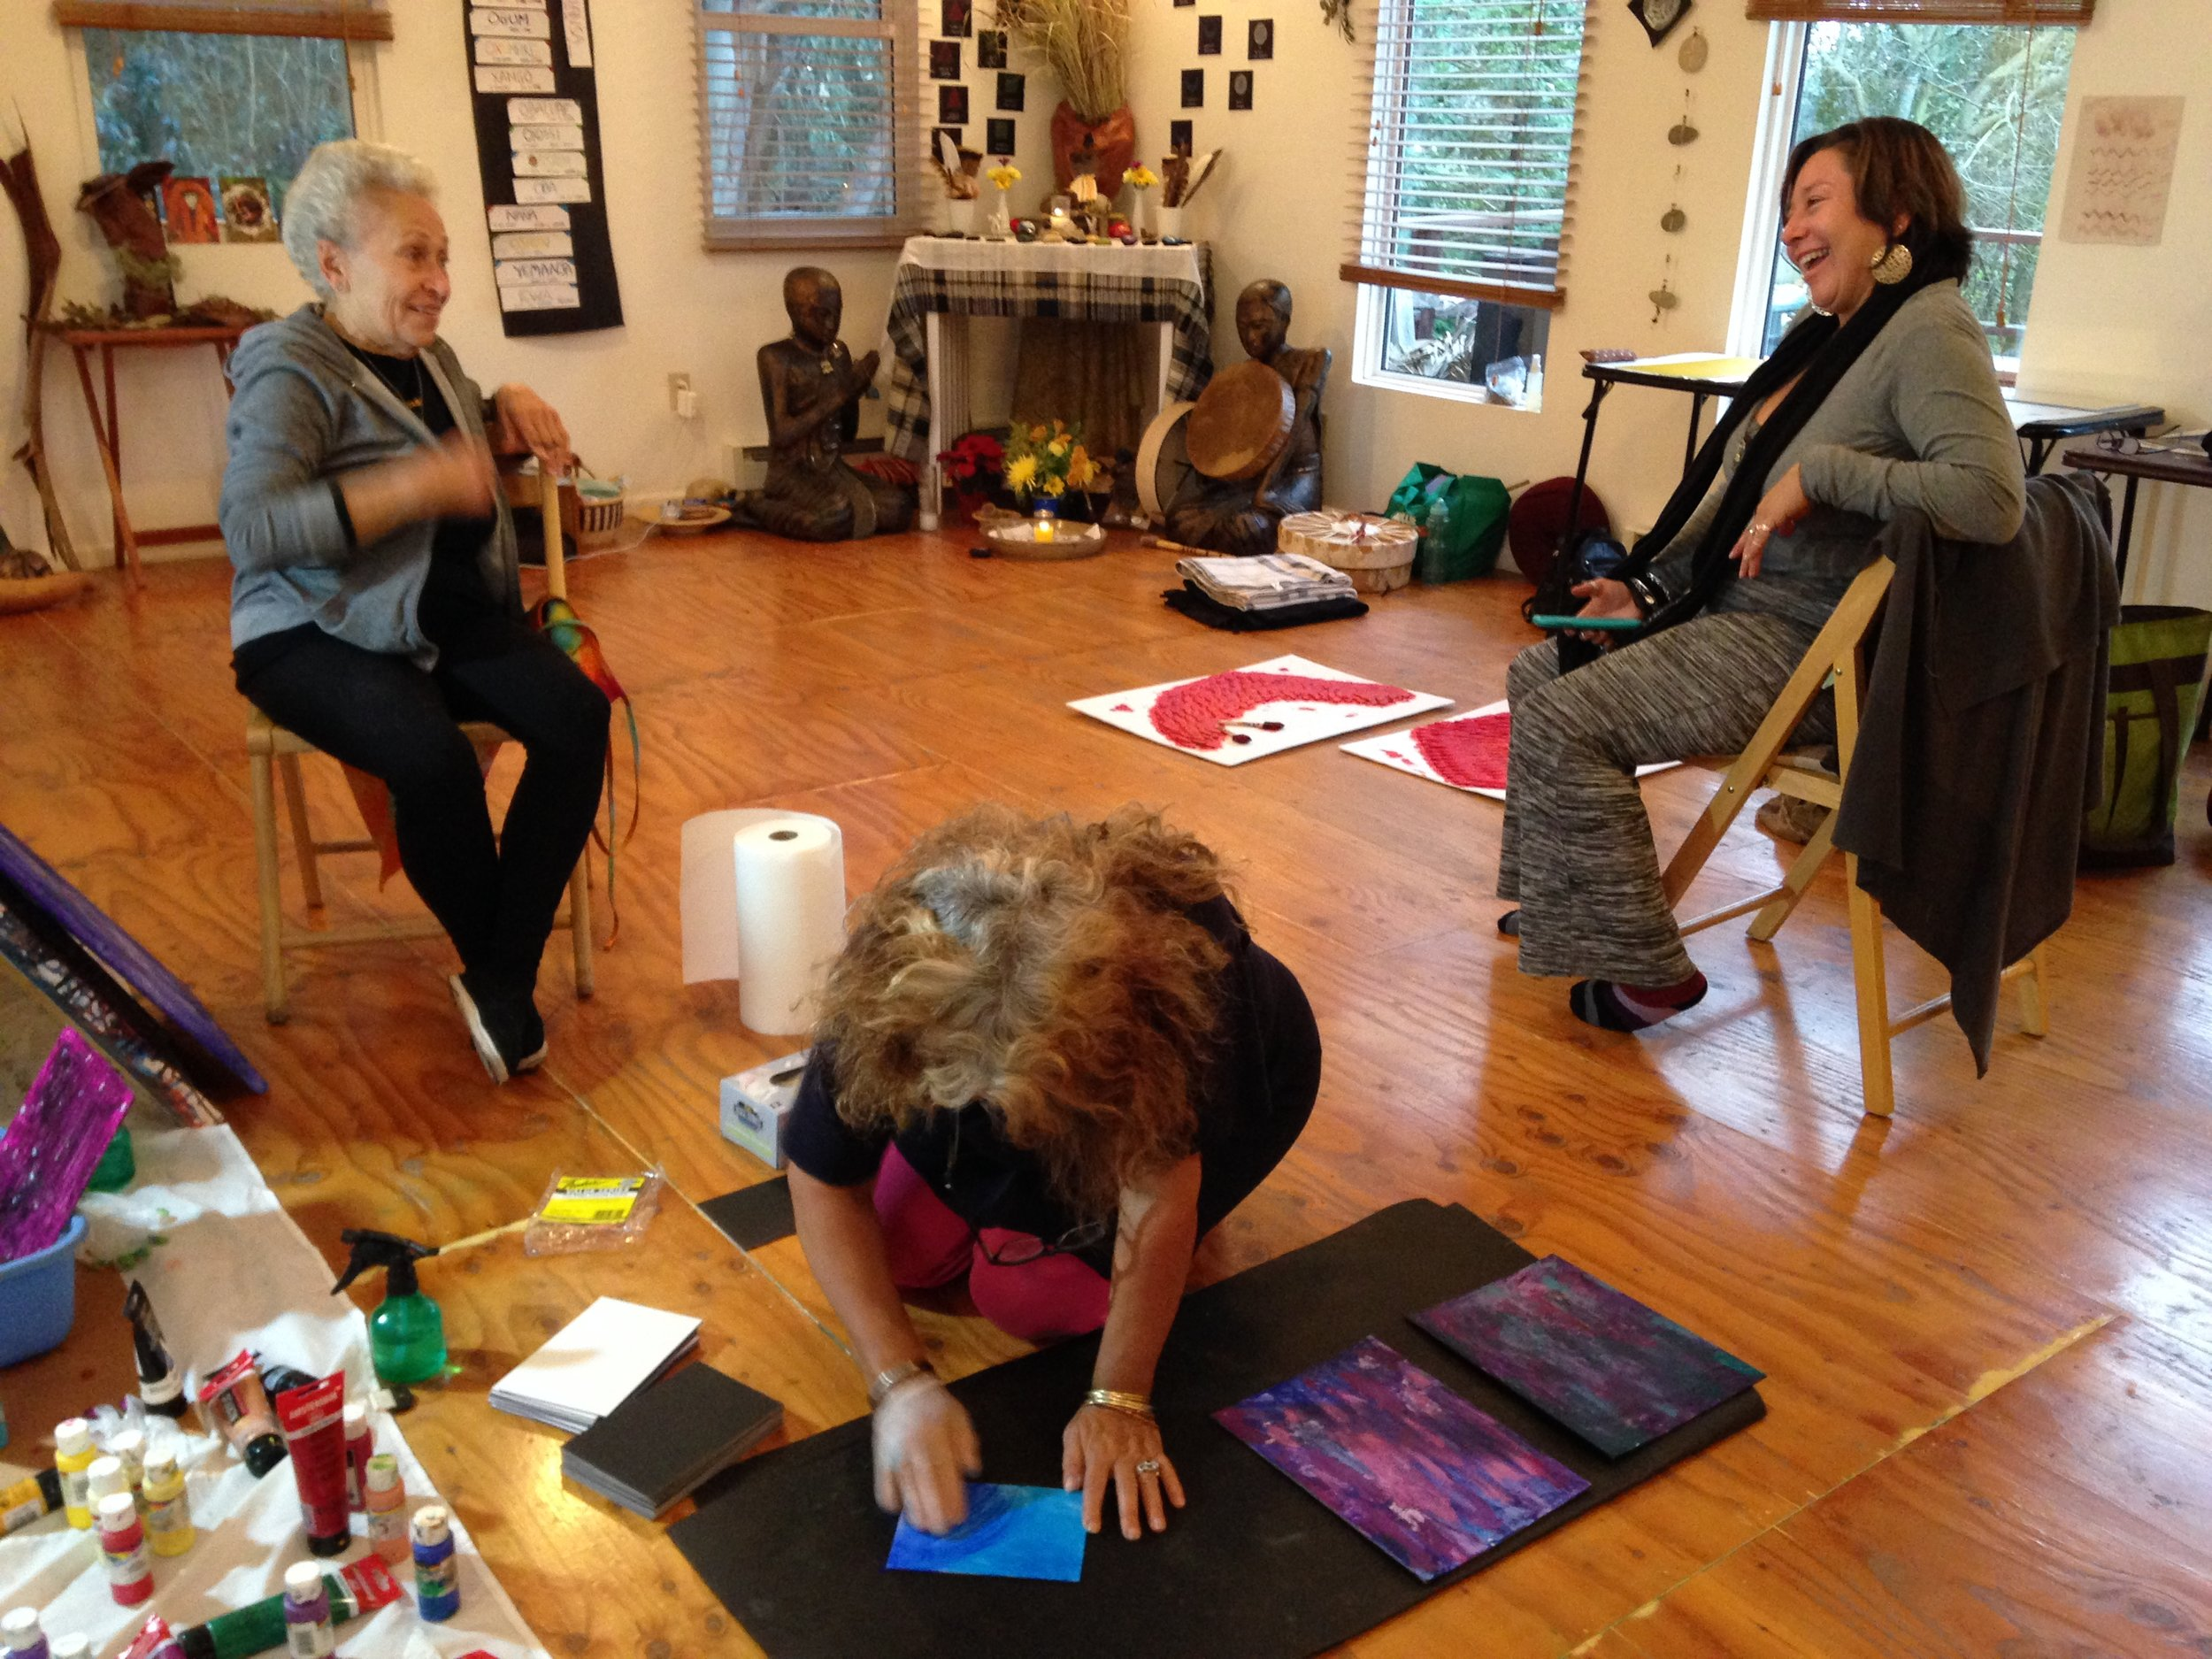 Laughter and creative chaos during the 2nd month long SOTO Pilot Project, Winter 2015, Santa Cruz County